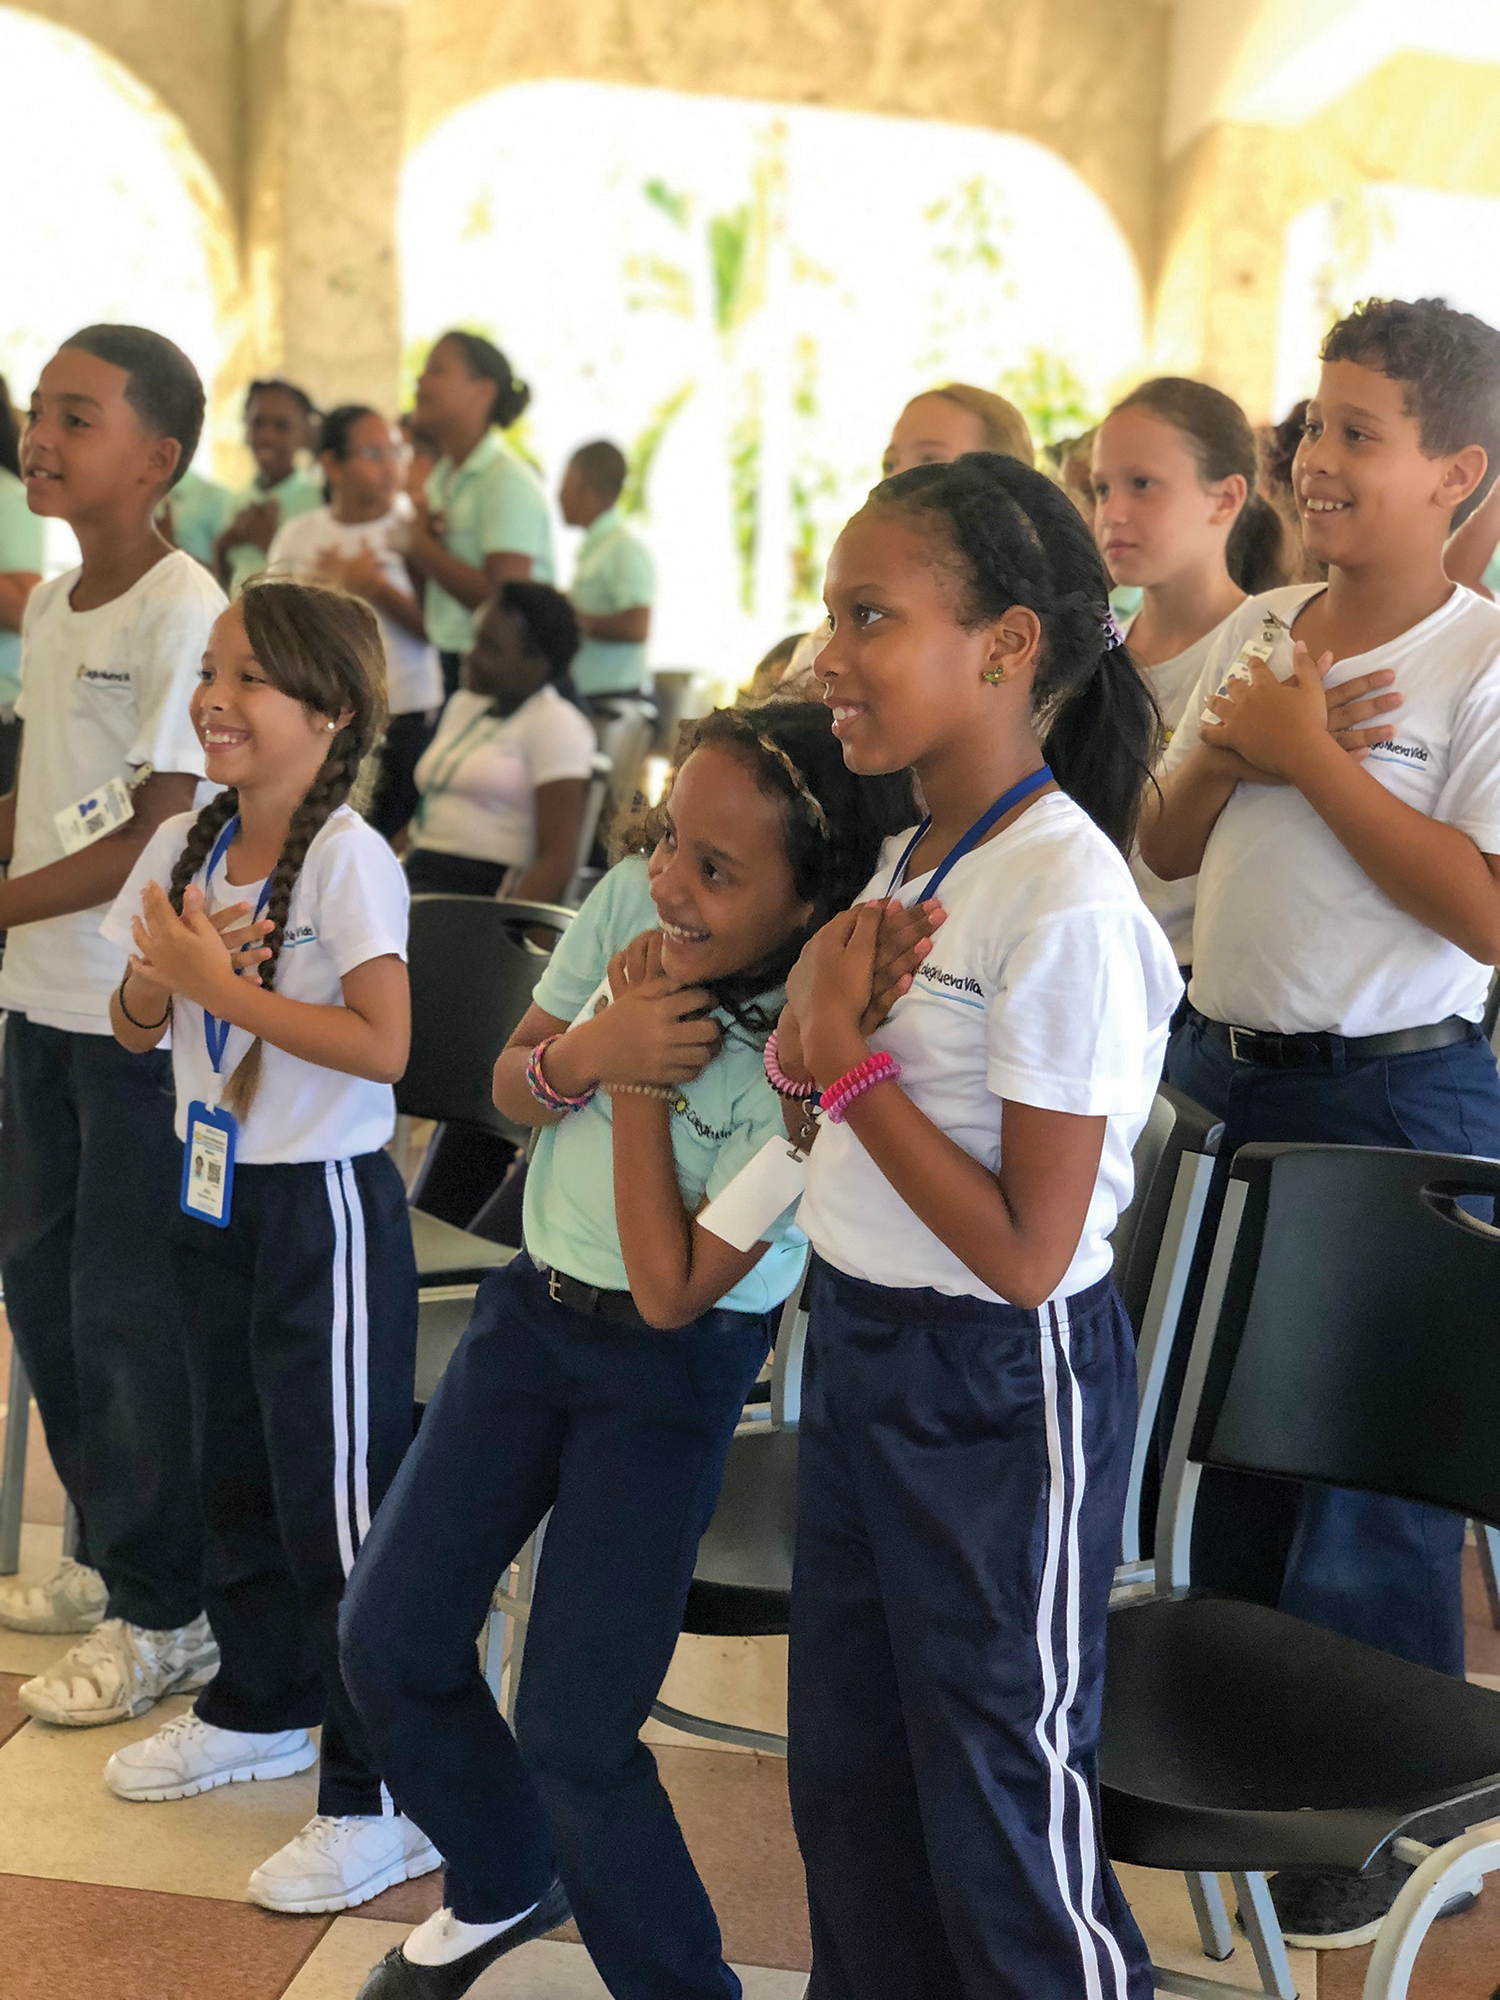 The children love lifting their voices and worshipping God with praise and worship songs during VBS.